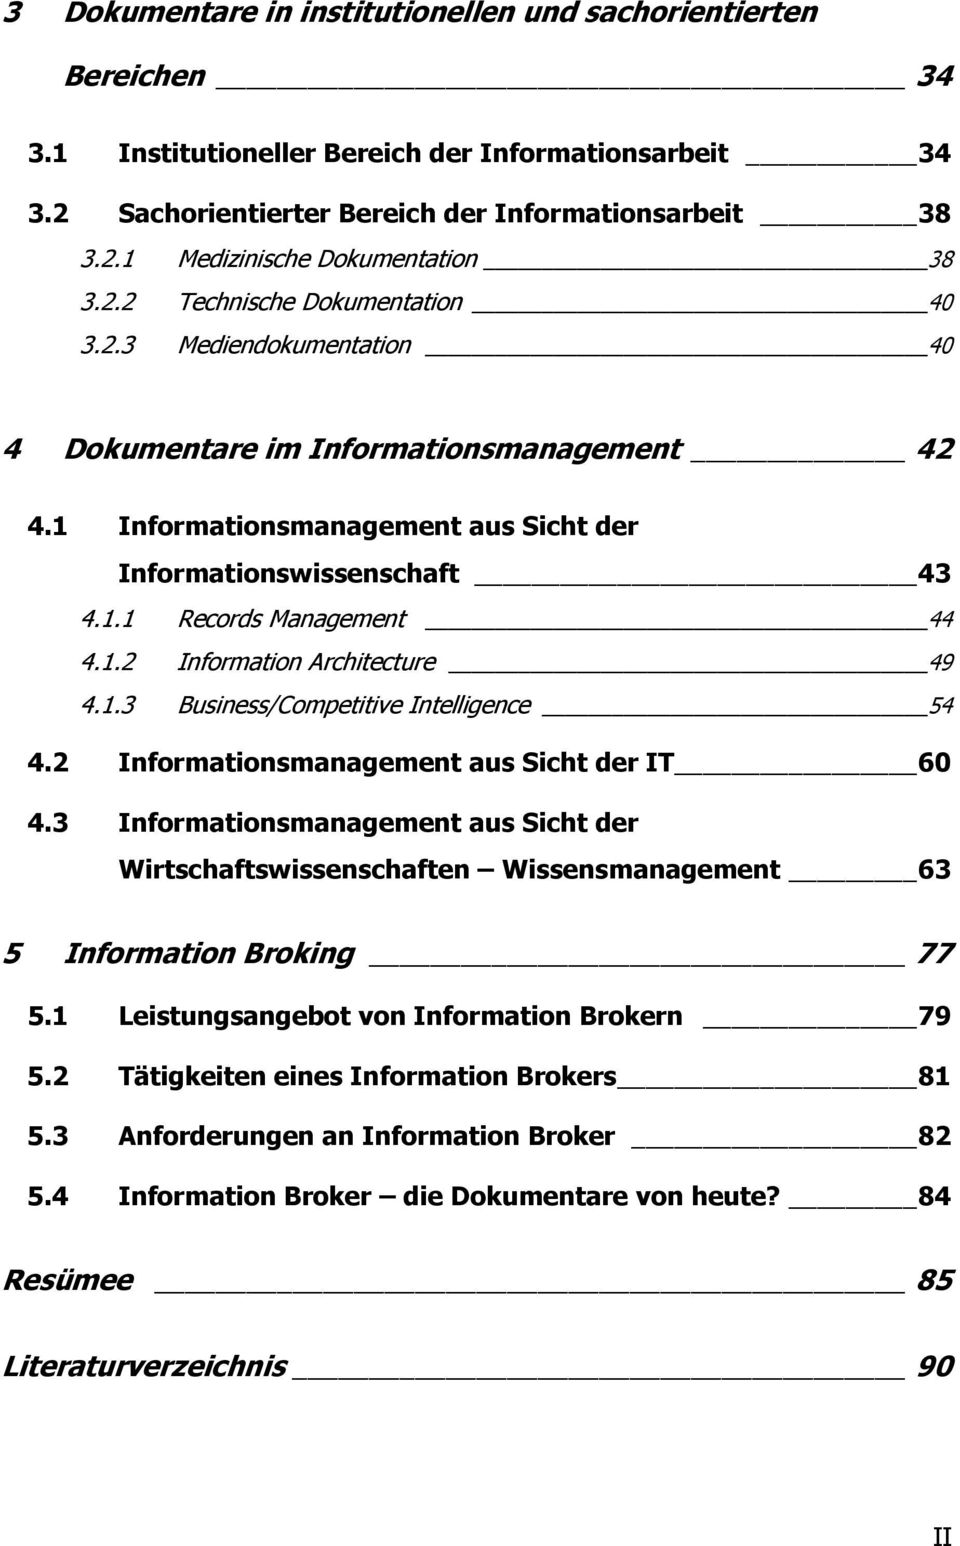 1.2 Information Architecture 49 4.1.3 Business/Competitive Intelligence 54 4.2 Informationsmanagement aus Sicht der IT 60 4.